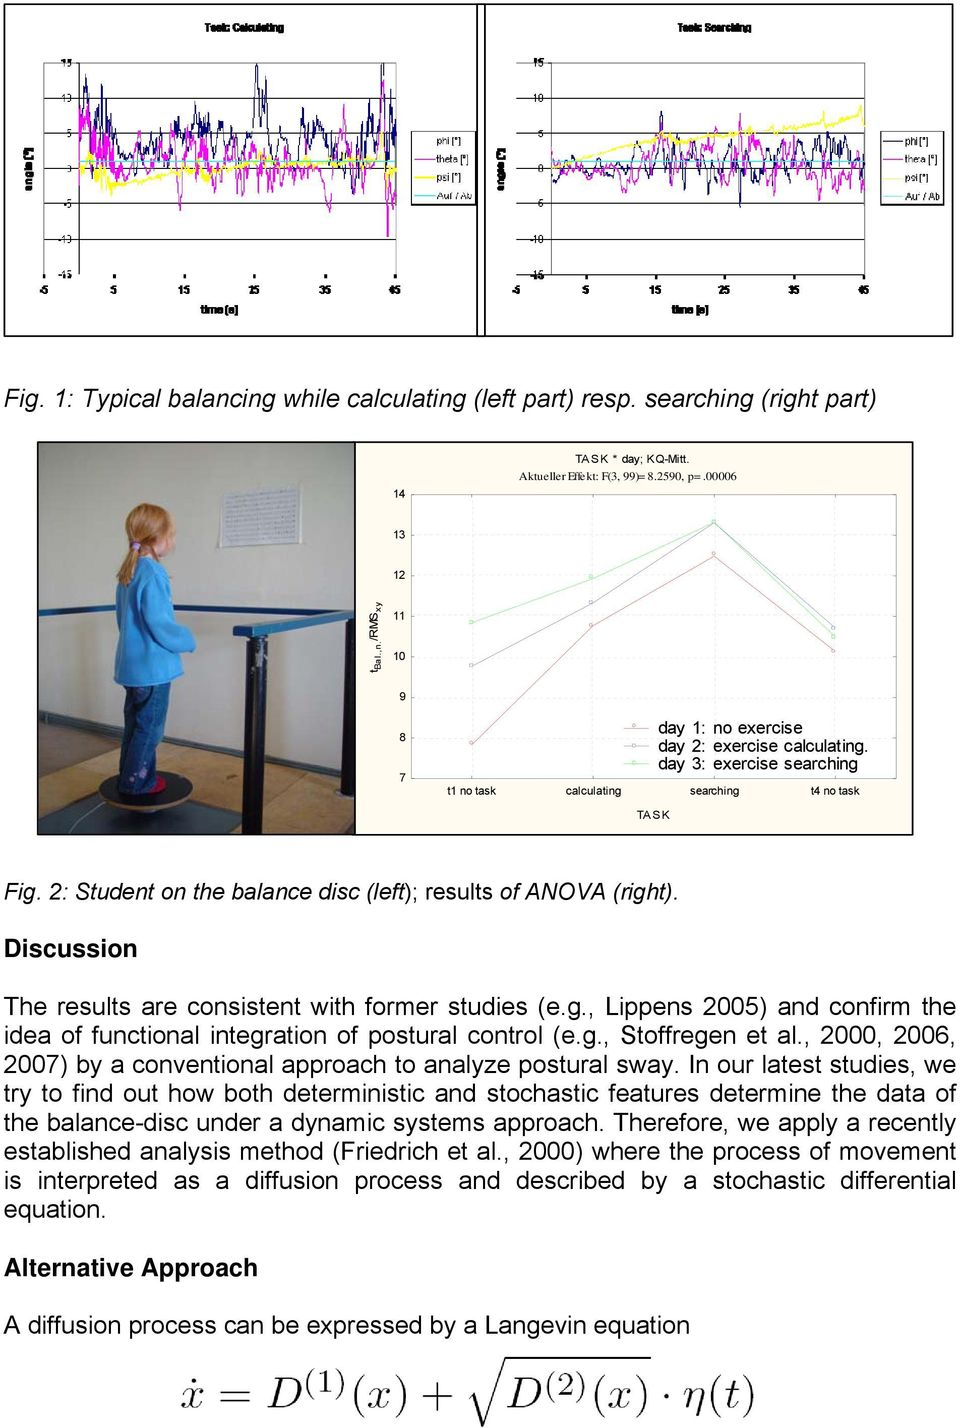 2: Student on the balance disc (left); results of ANOVA (right). Discussion The results are consistent with former studies (e.g., Lippens 2005) and confirm the idea of functional integration of postural control (e.